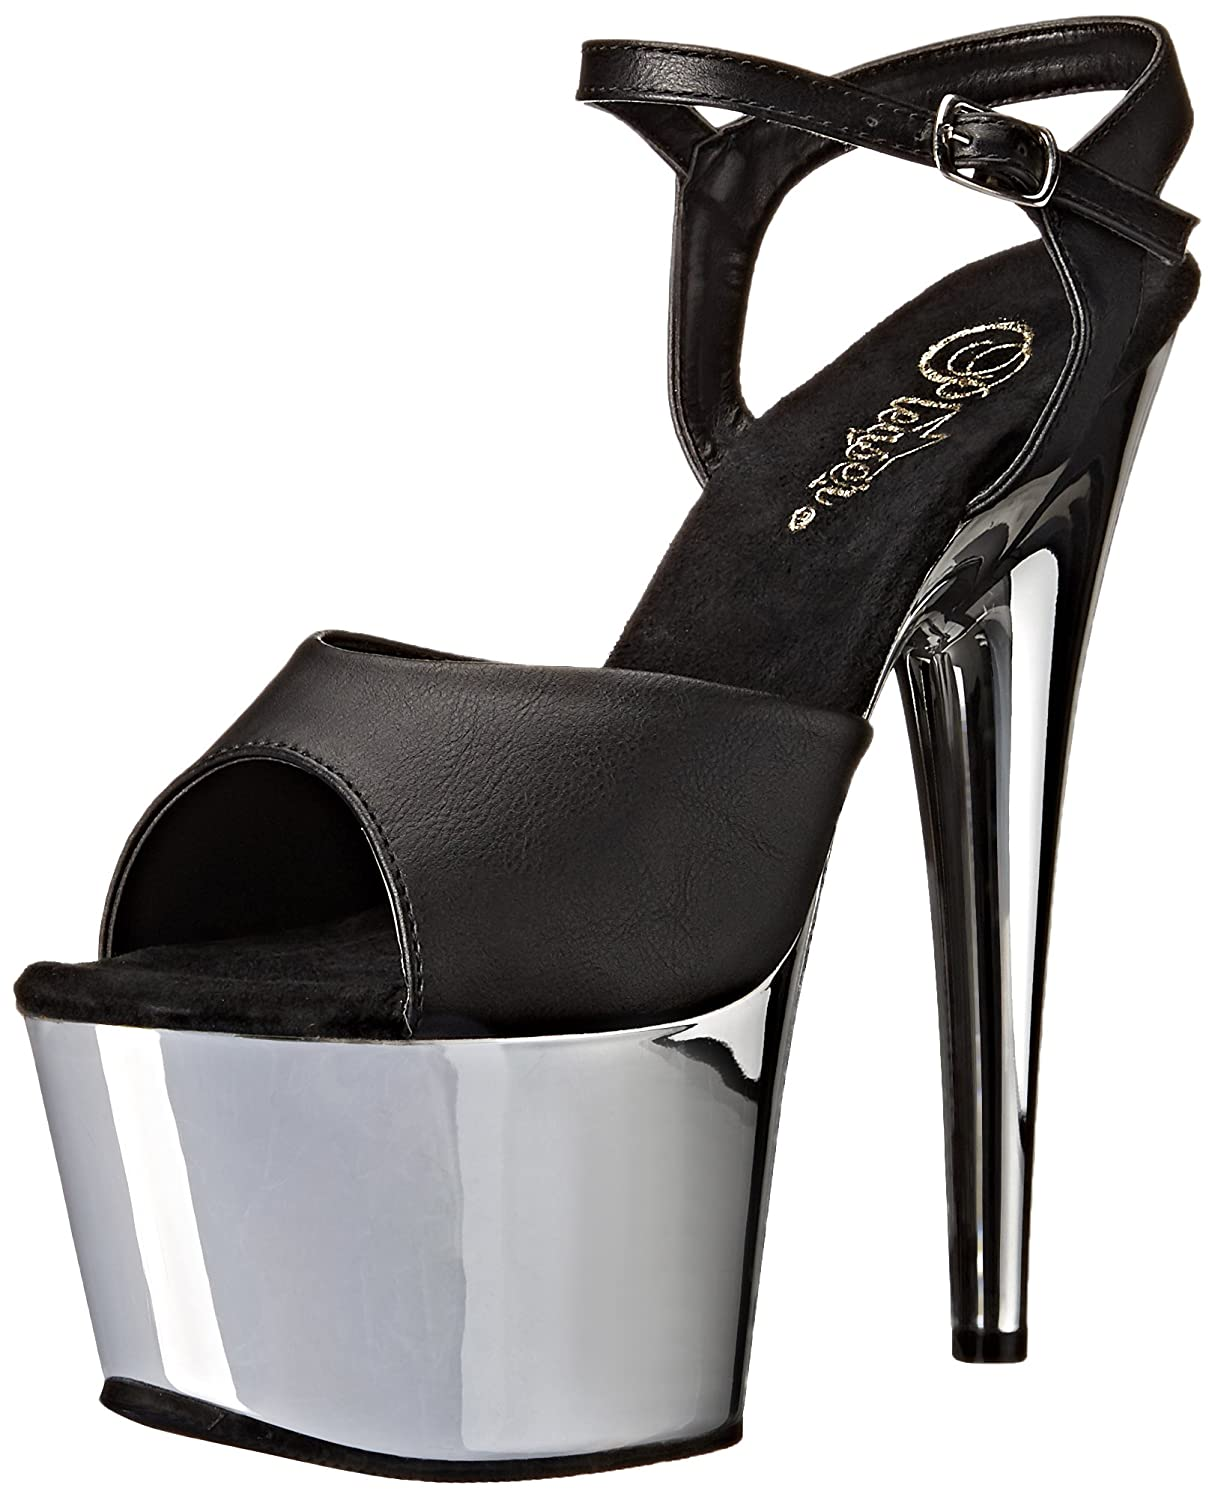 Pleaser Women's ADO709/BPU/SCH Platform Dress Sandal B00QPTD5D4 10 B(M) US|Black Faux Leather/Silver Chrome